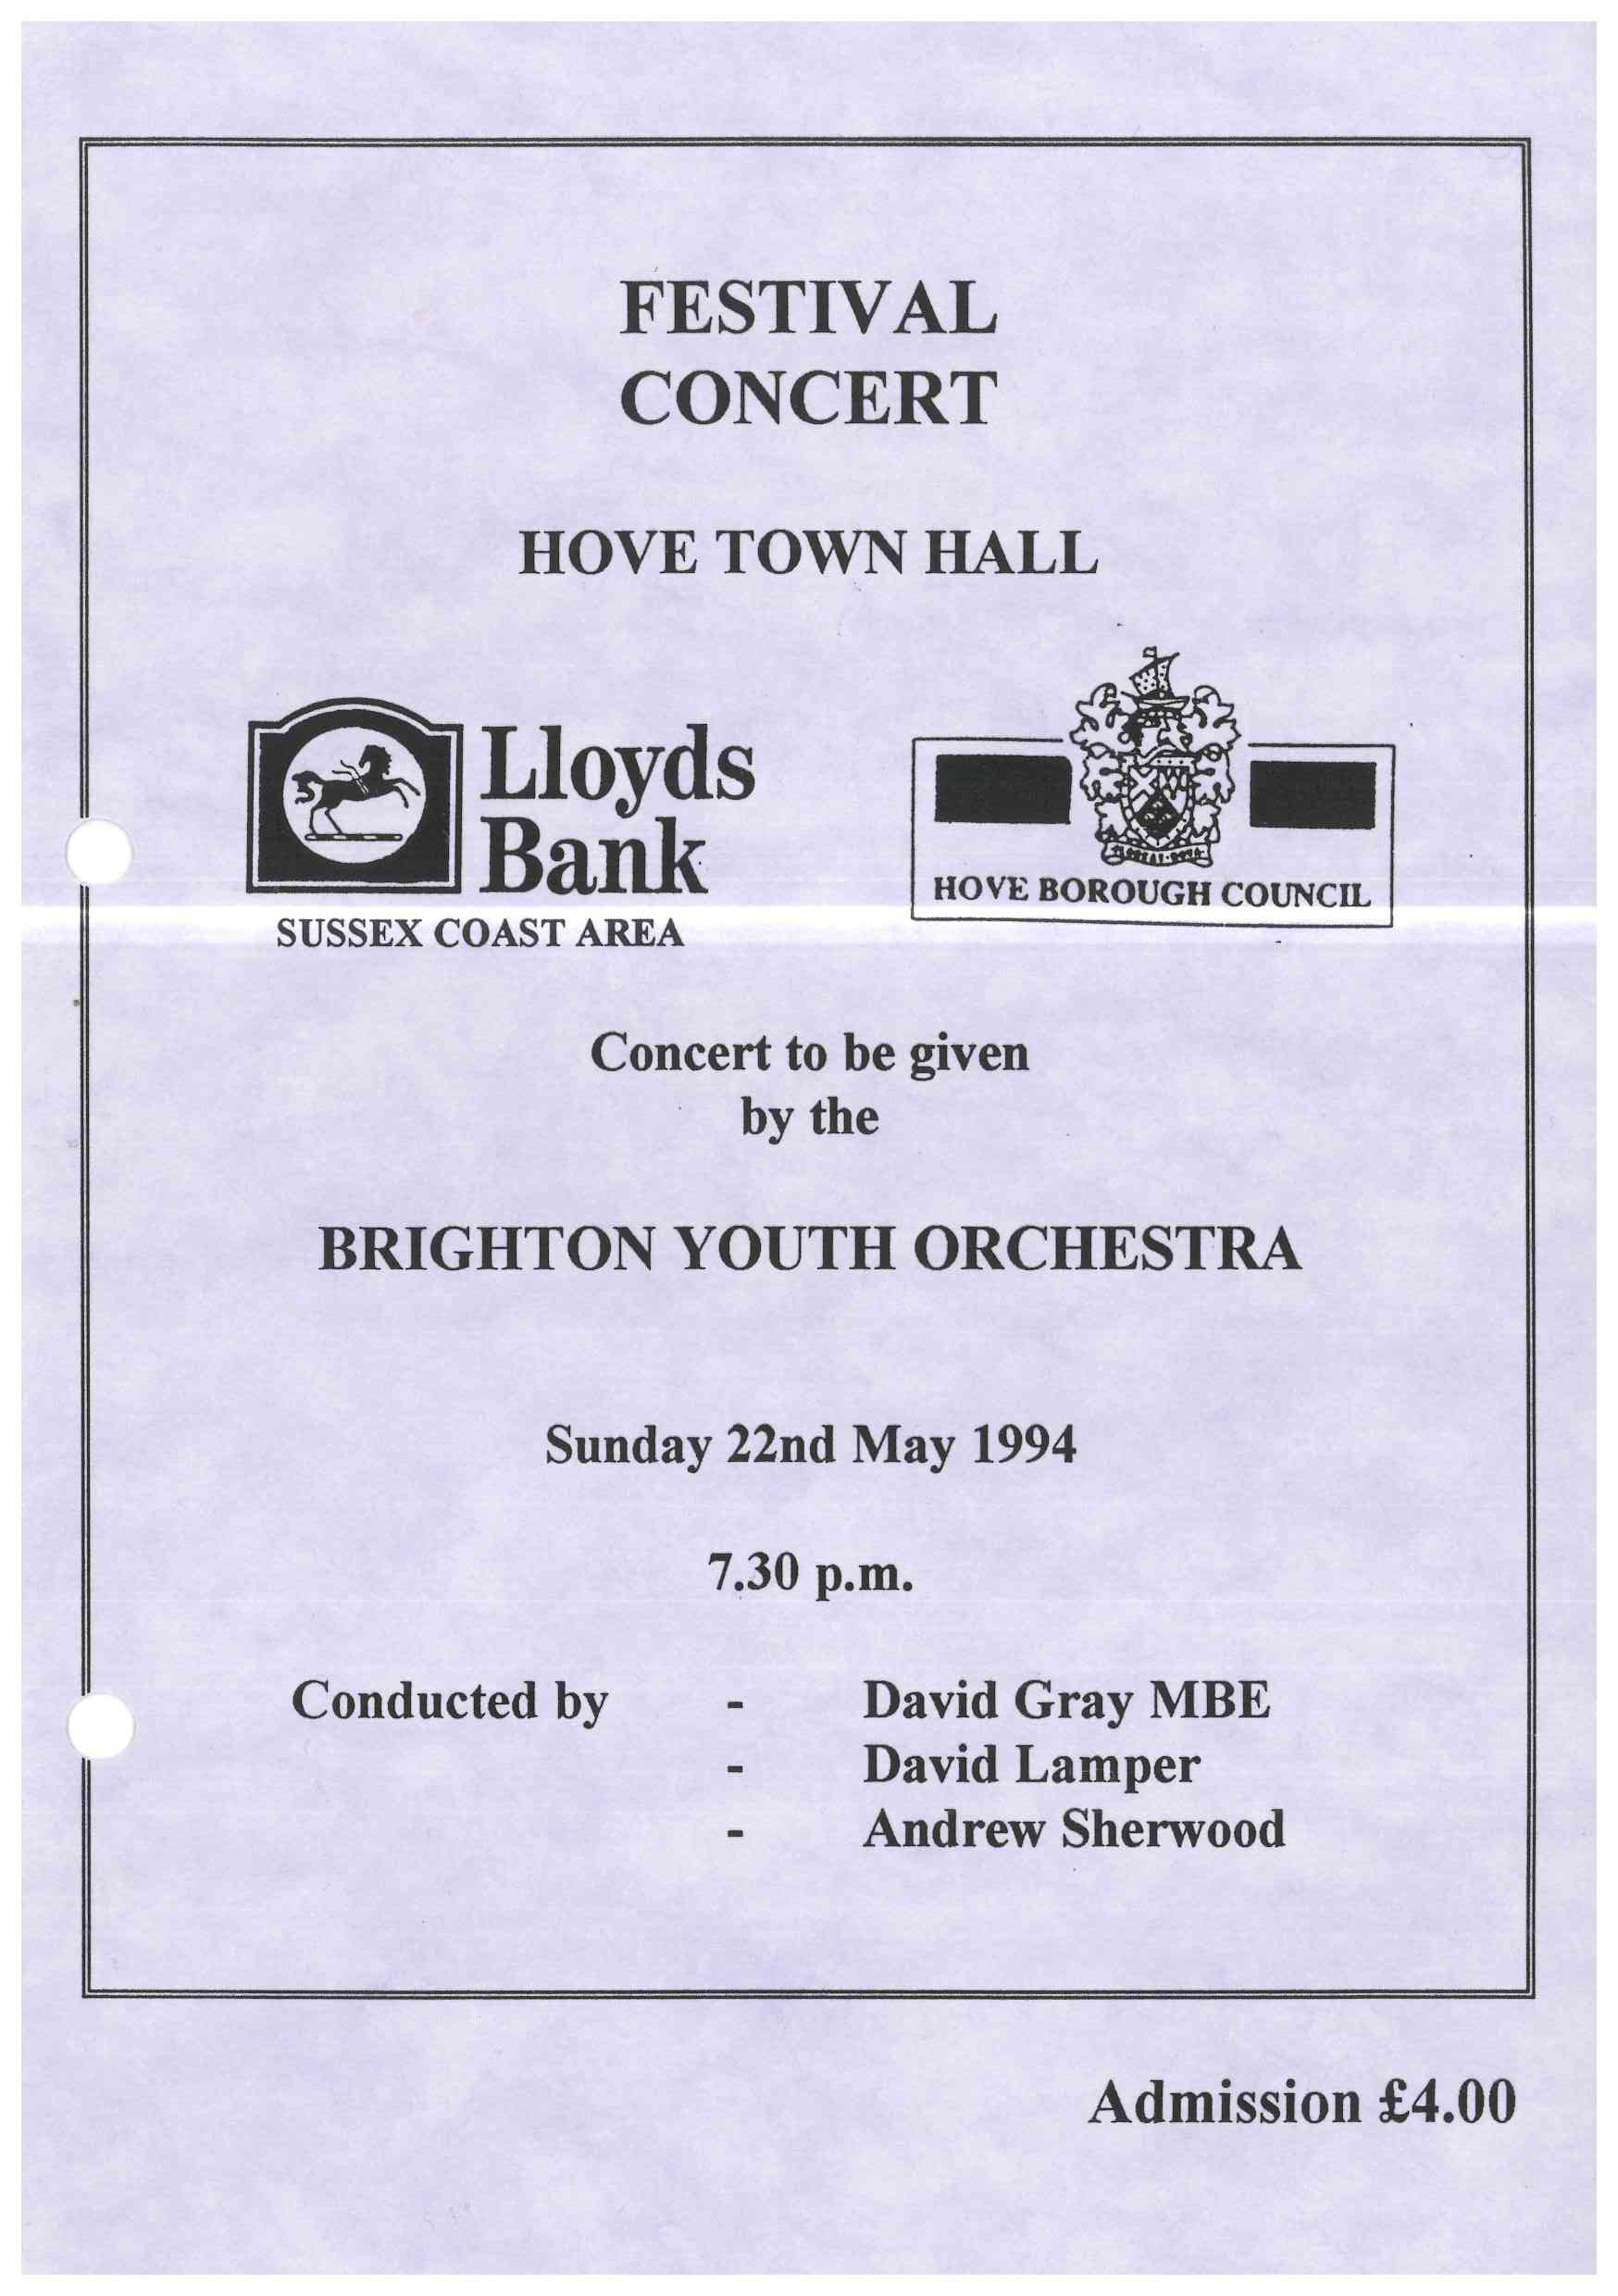 00322-BYO Hove Town Hall, 22nd May 1994.jpg